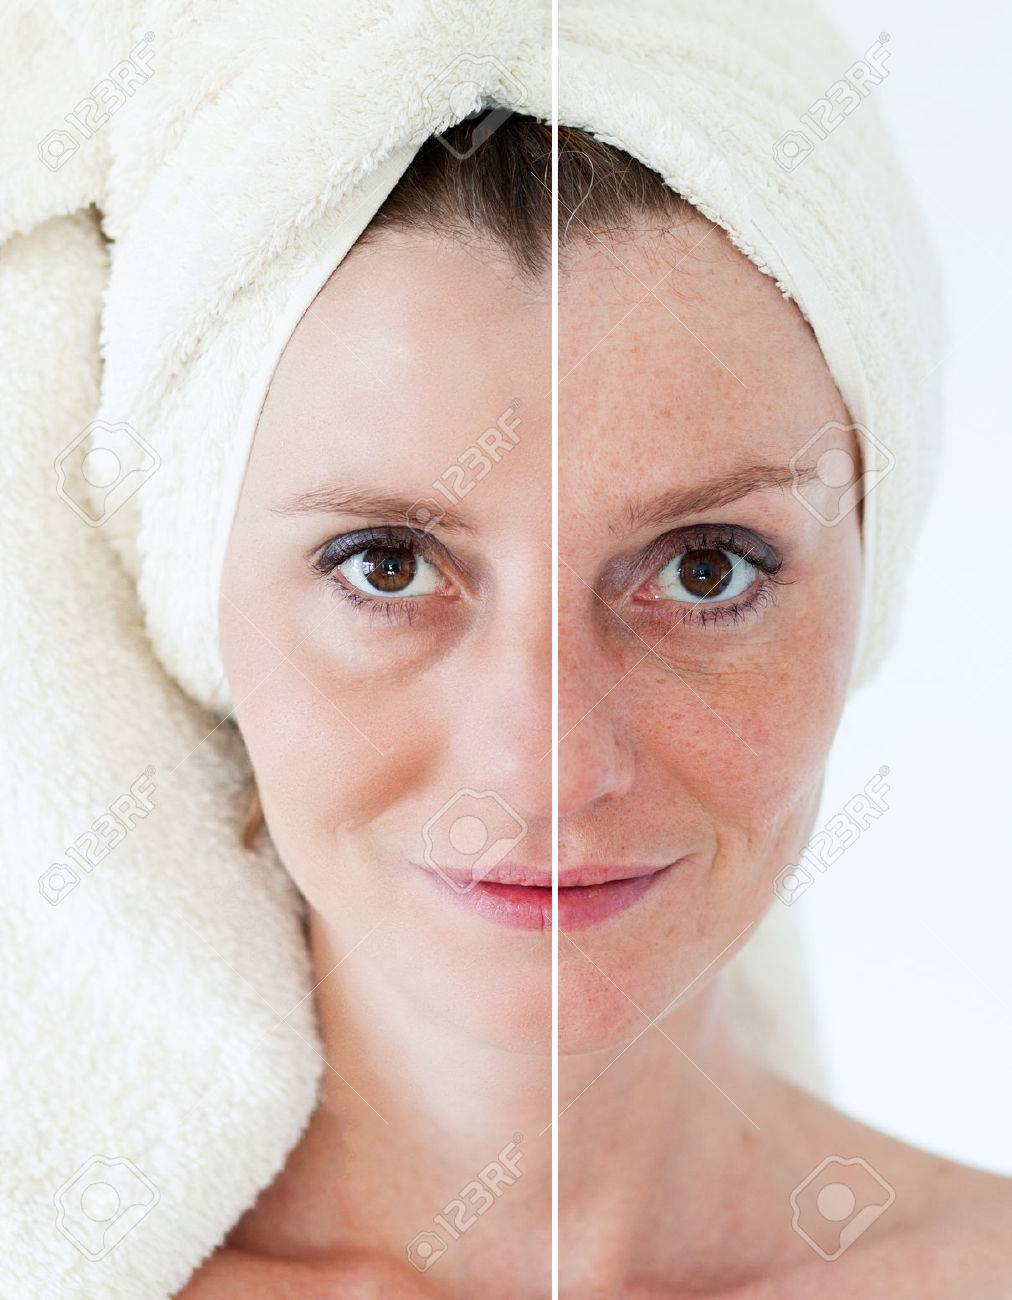 Beauty concept - skin care, anti-aging procedures, rejuvenation, lifting, tightening of facial skin - 38470655